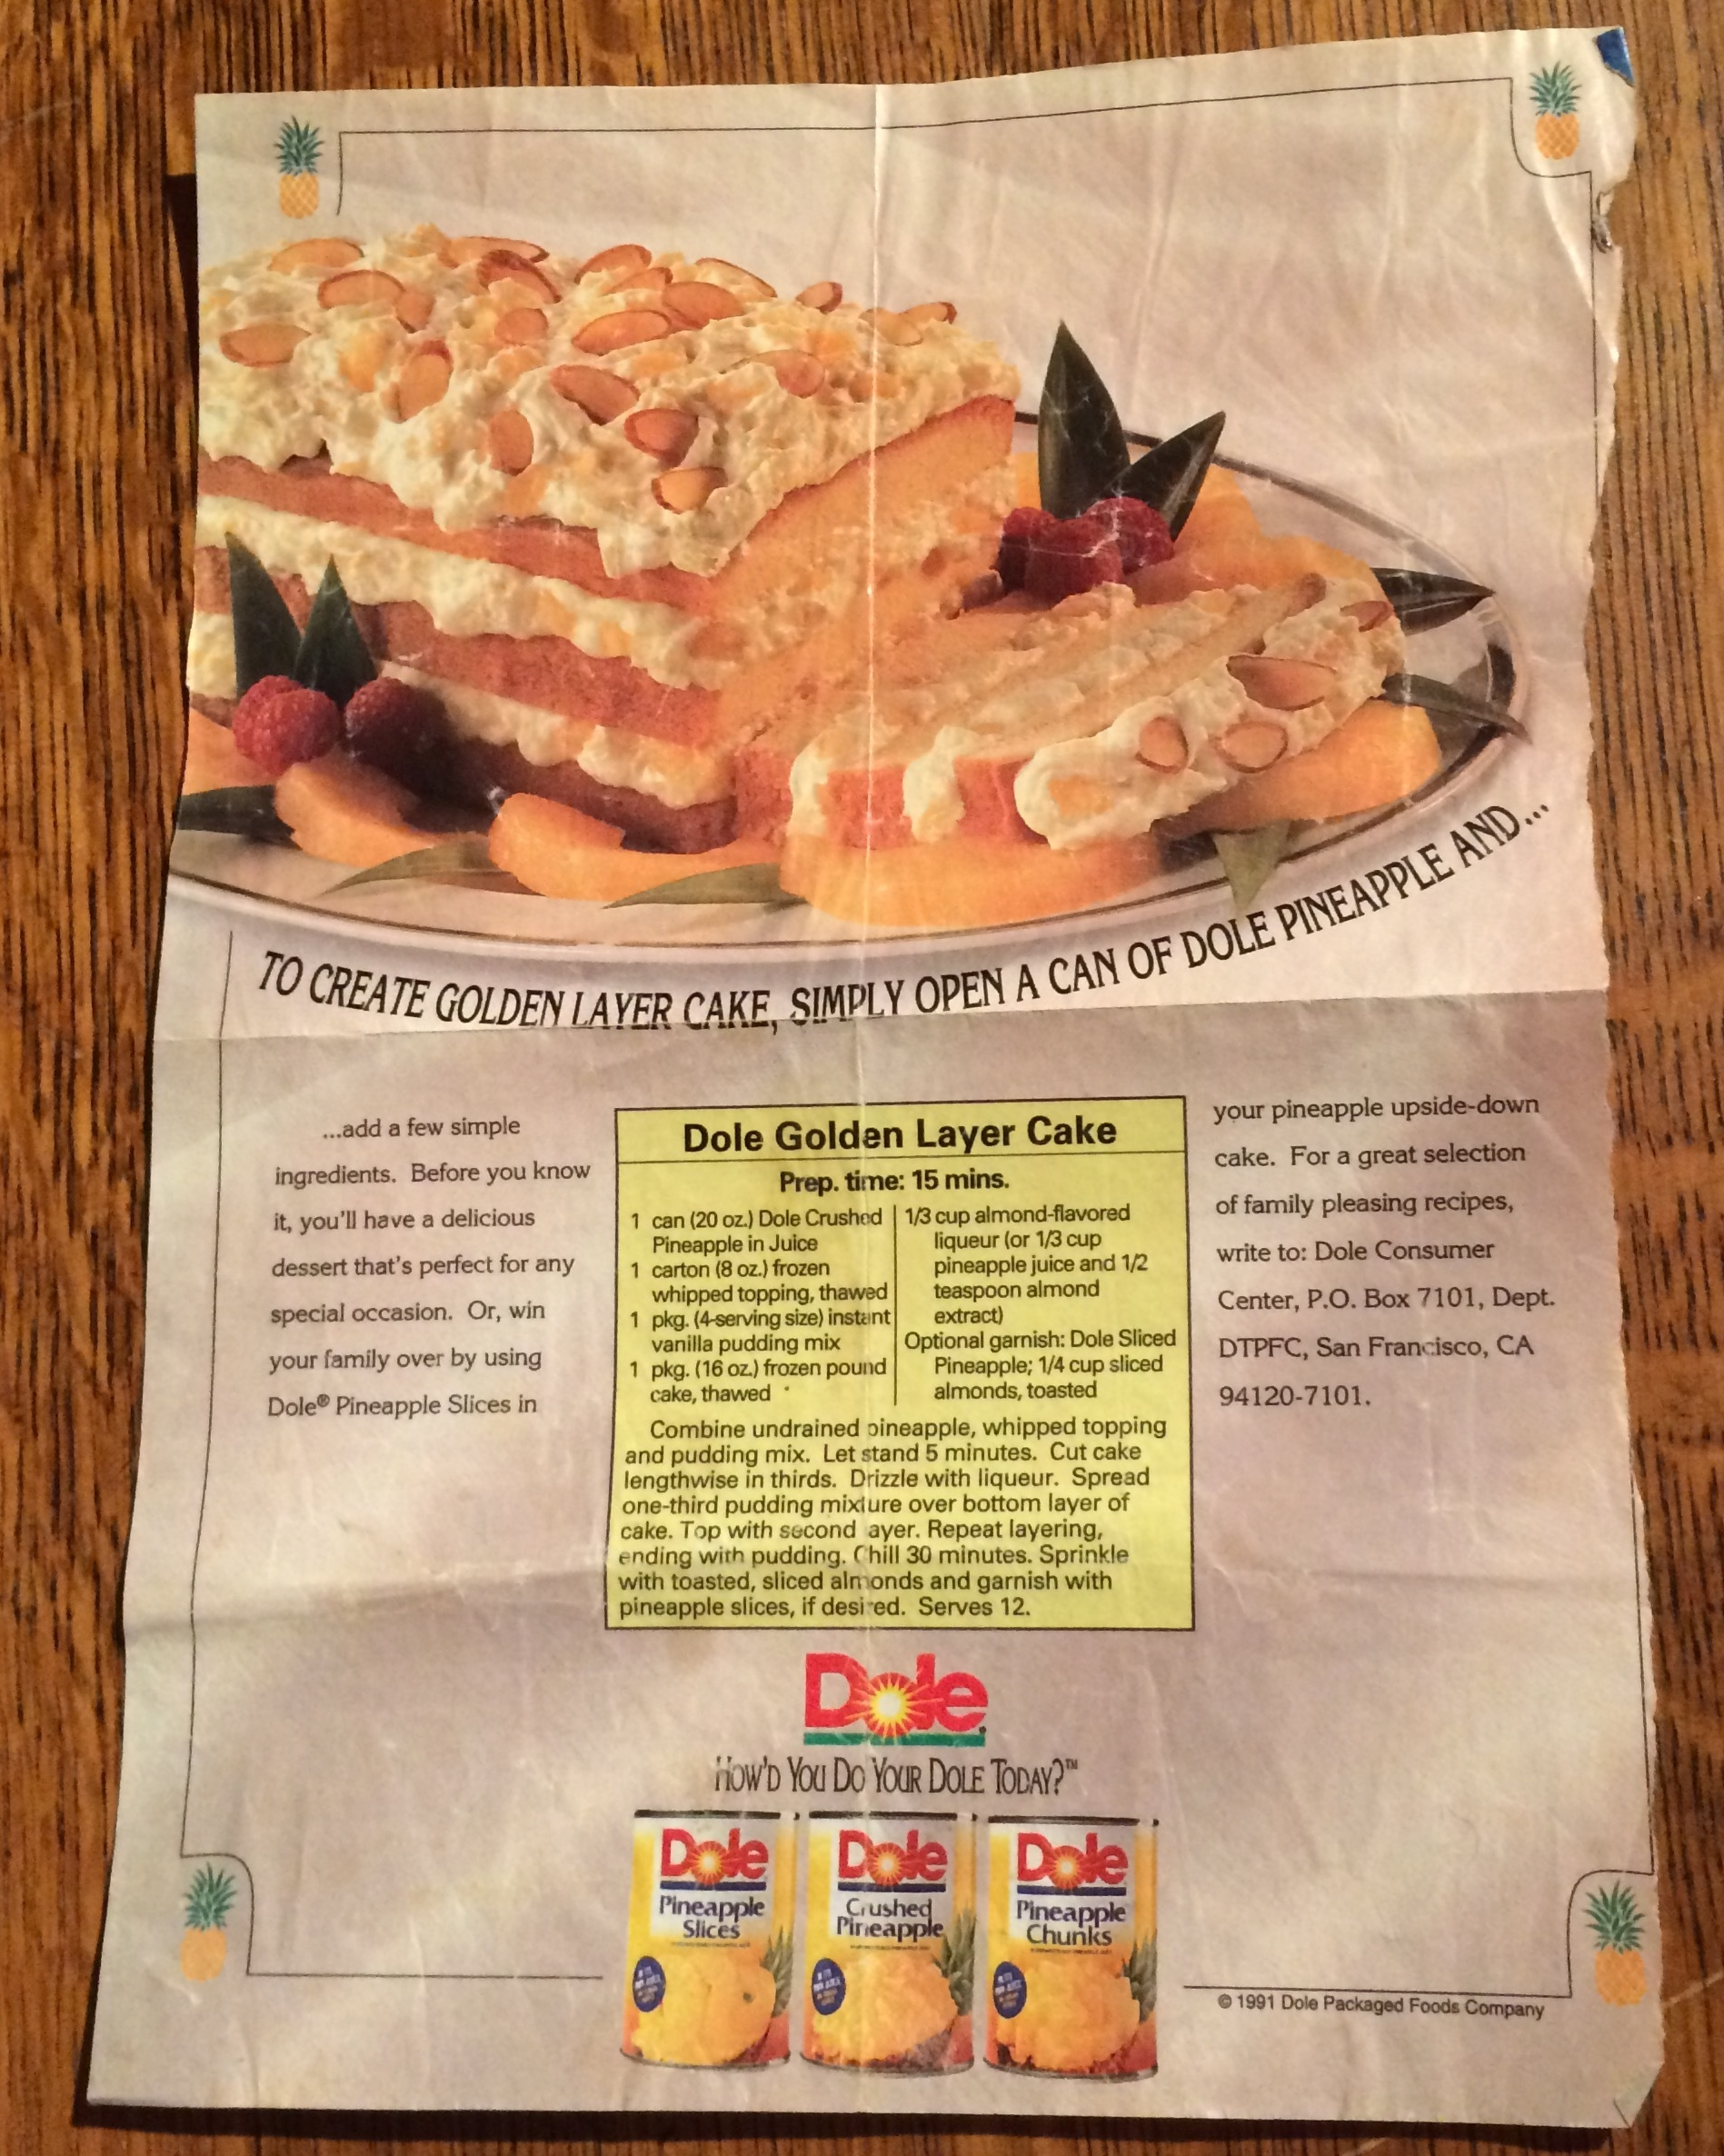 Photo of original advertisement torn from a 1991 magazine. A simple and delicious dessert!